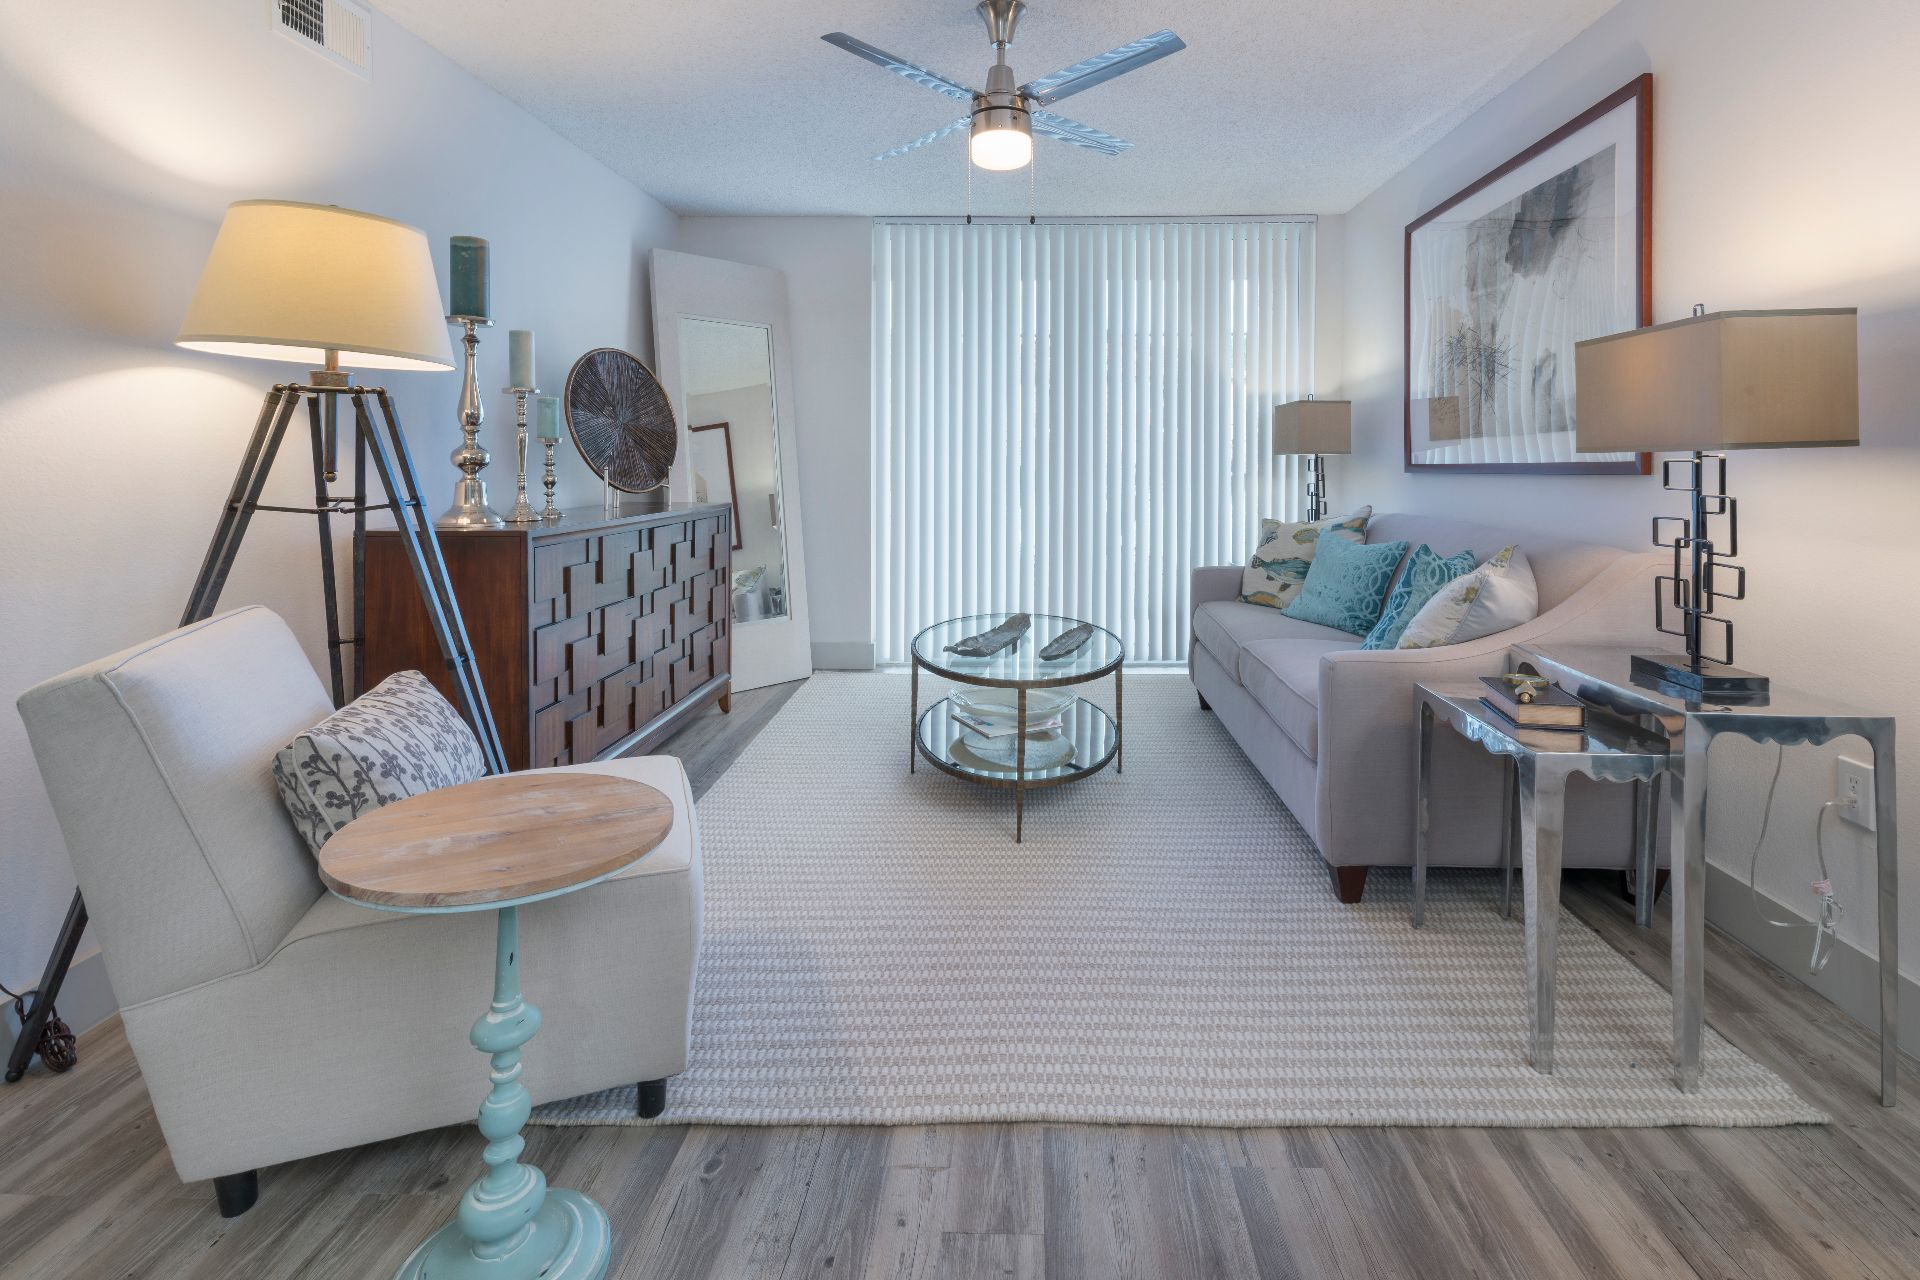 Living room with rug and ceiling fan